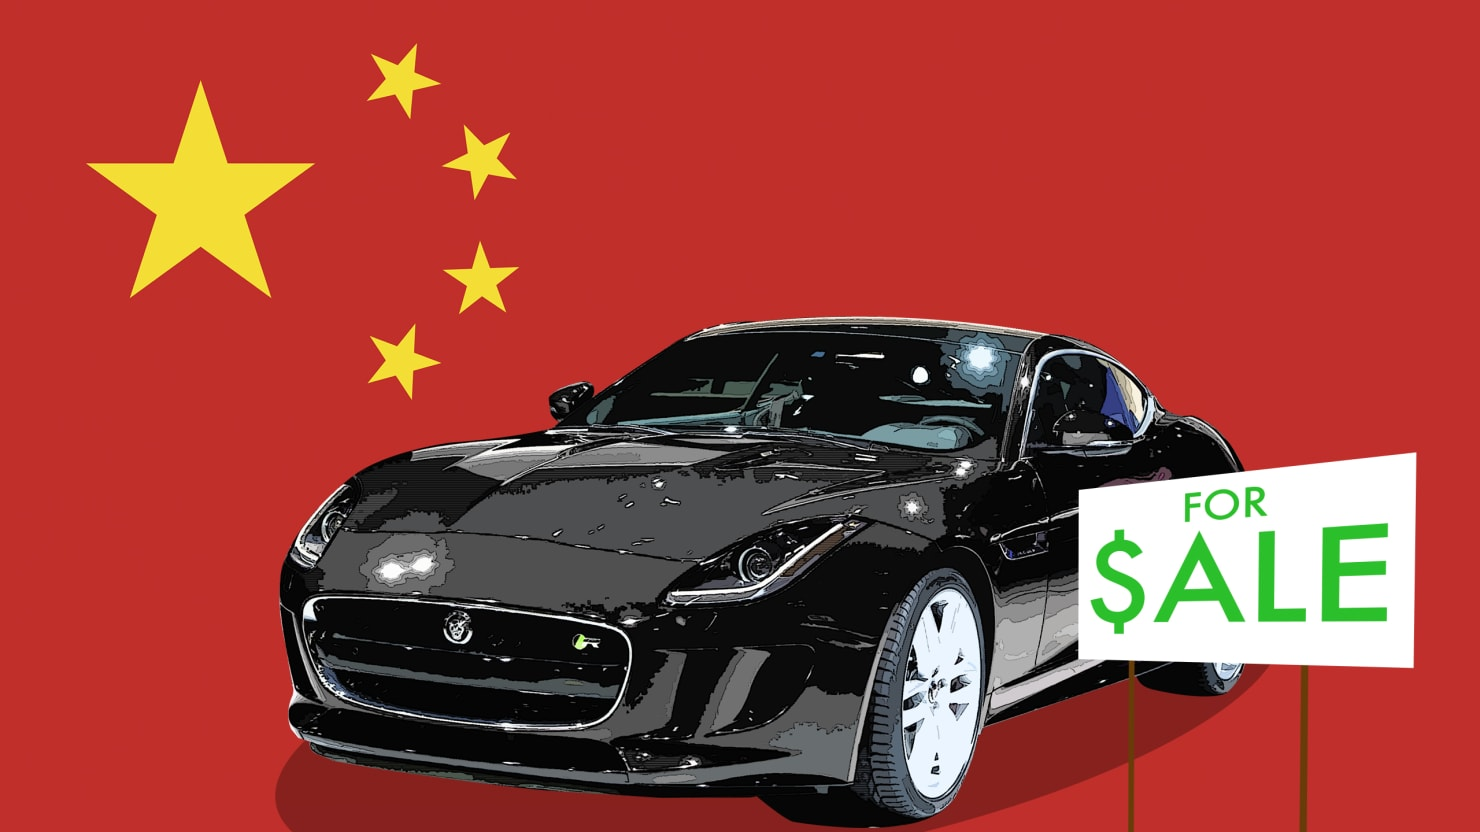 luxury car buyer job craigslist  The Lucrative, Barely Legal Business of Shipping Luxury Cars to China